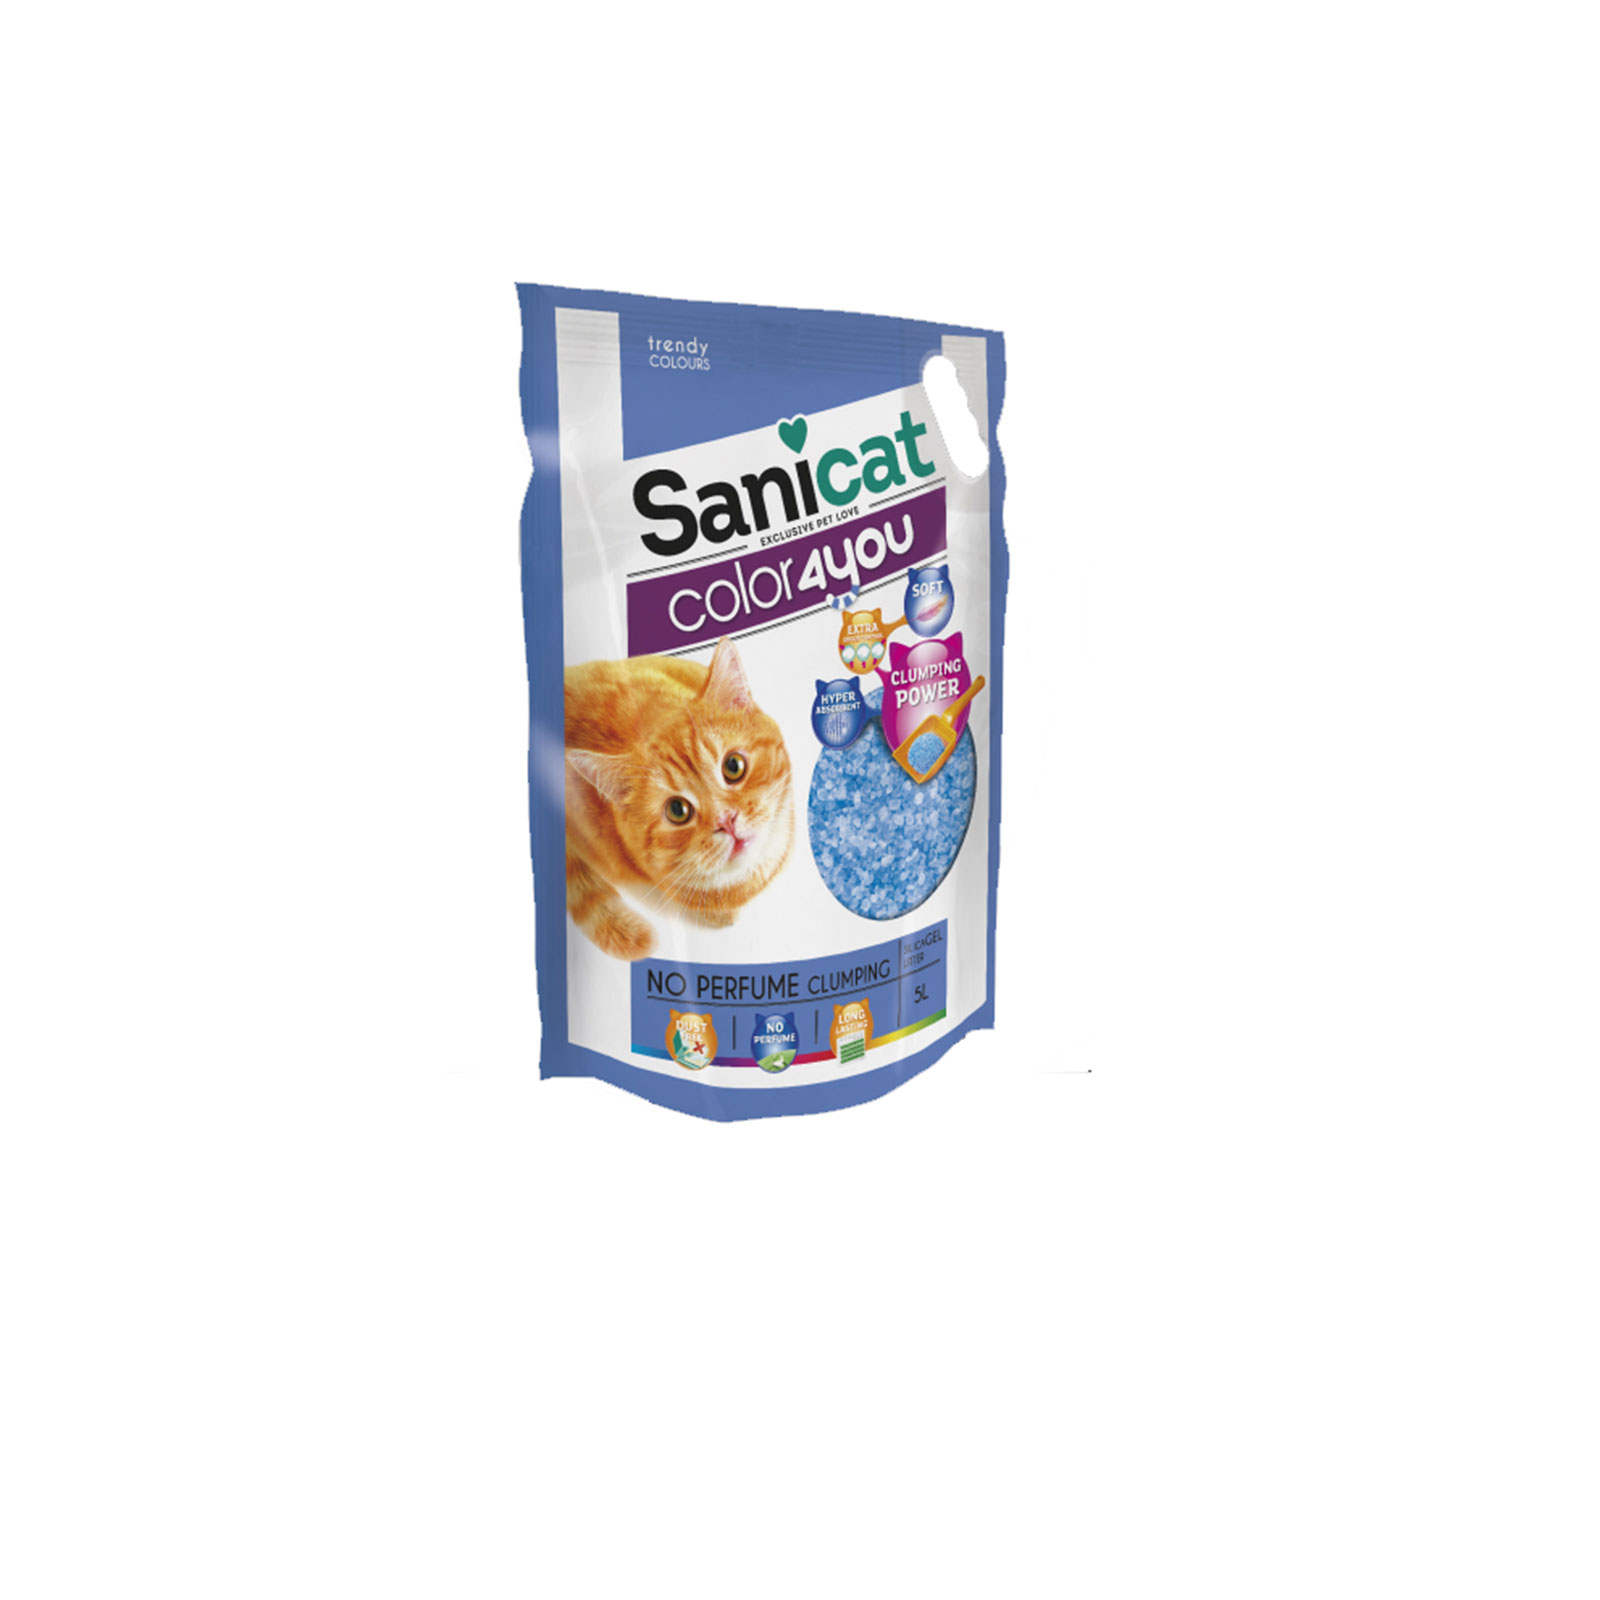 Sanicat - Color 4 you blue - Posip za mačke, silikonski, grudvajći, plavi